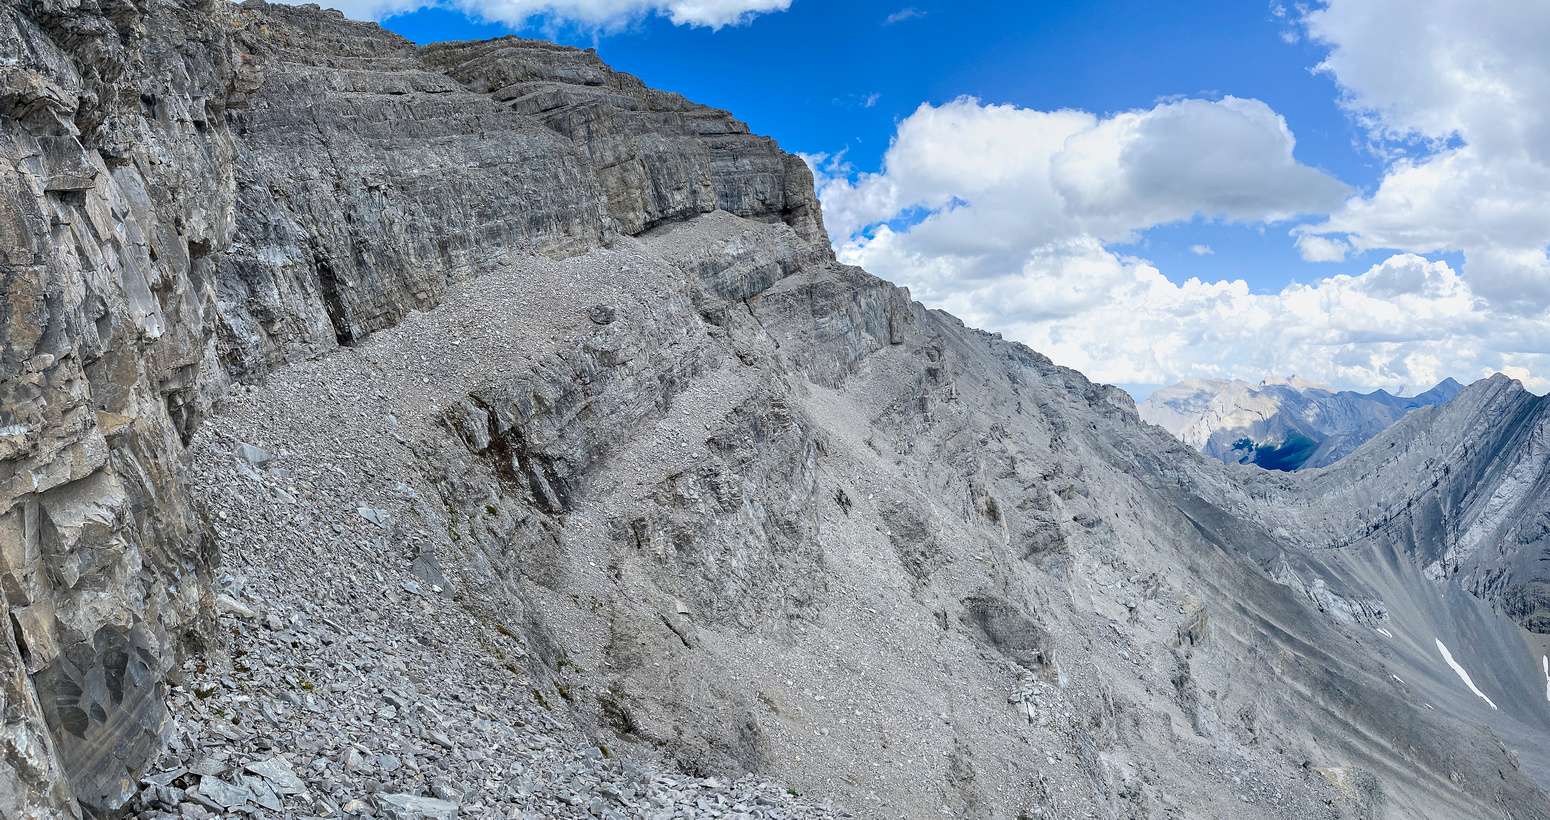 The only break in the summit cliffs is just ahead trending left of the scree ledge.